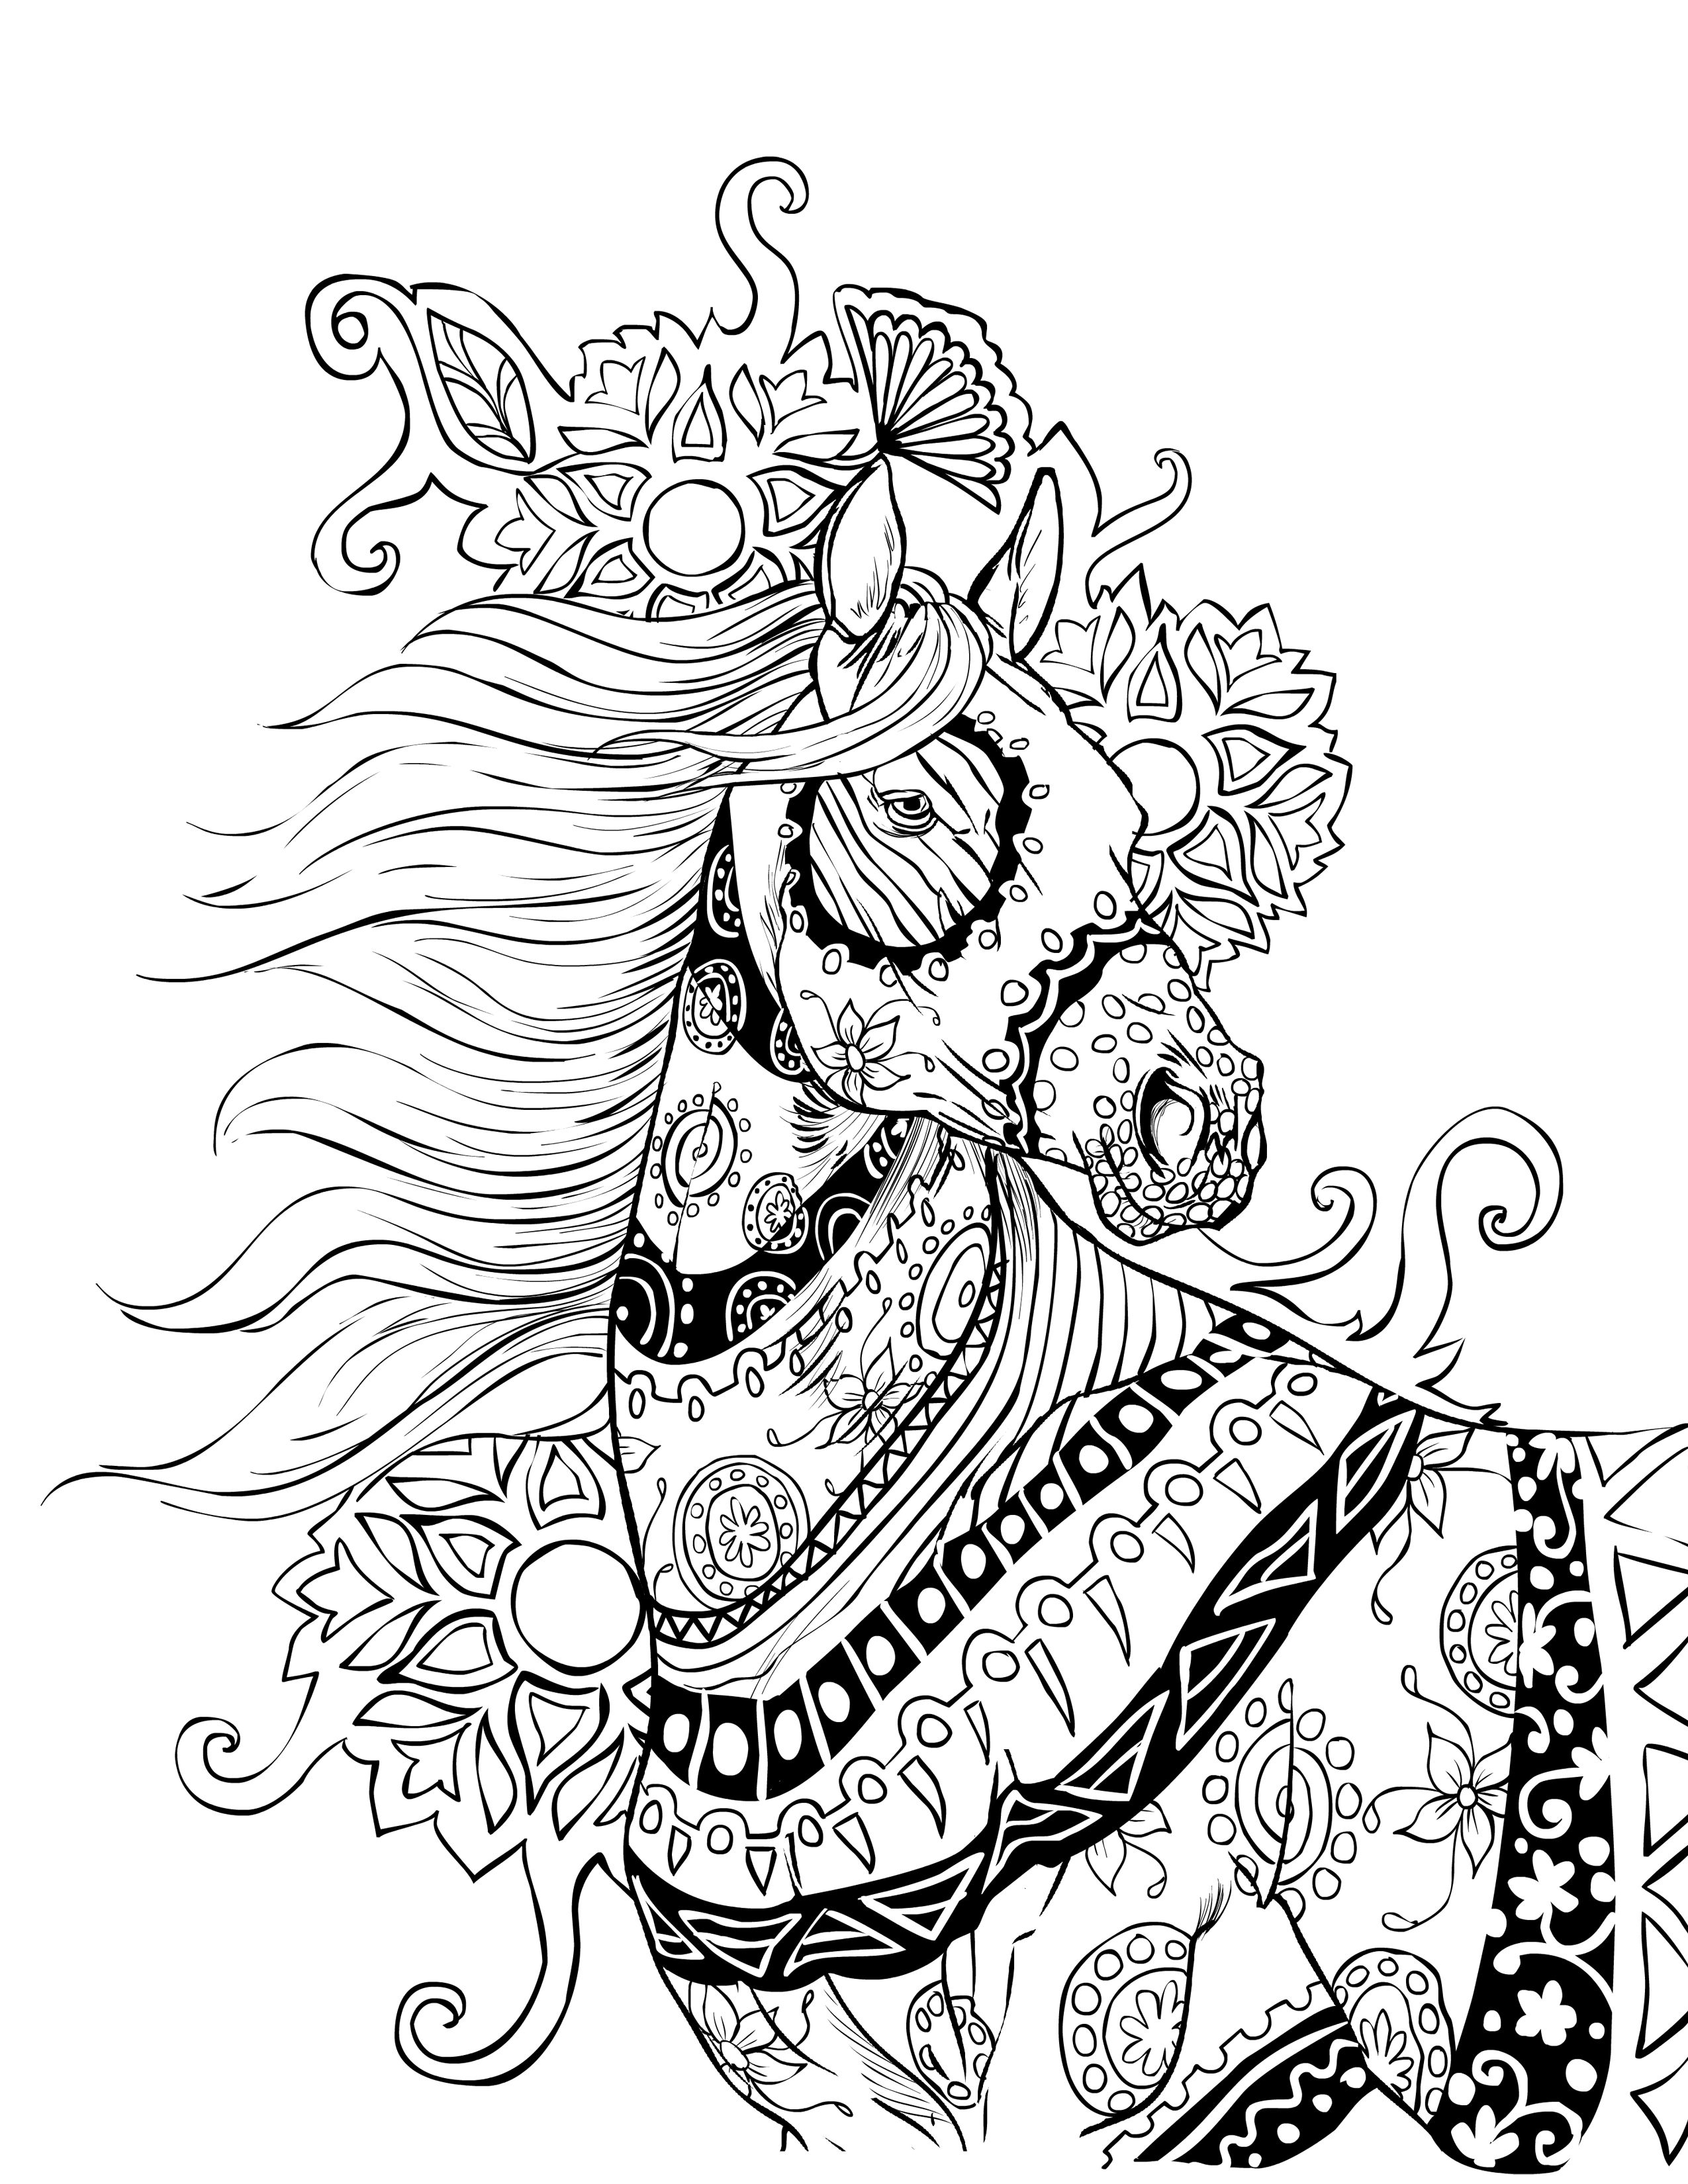 horse adult coloring pages - photo#27